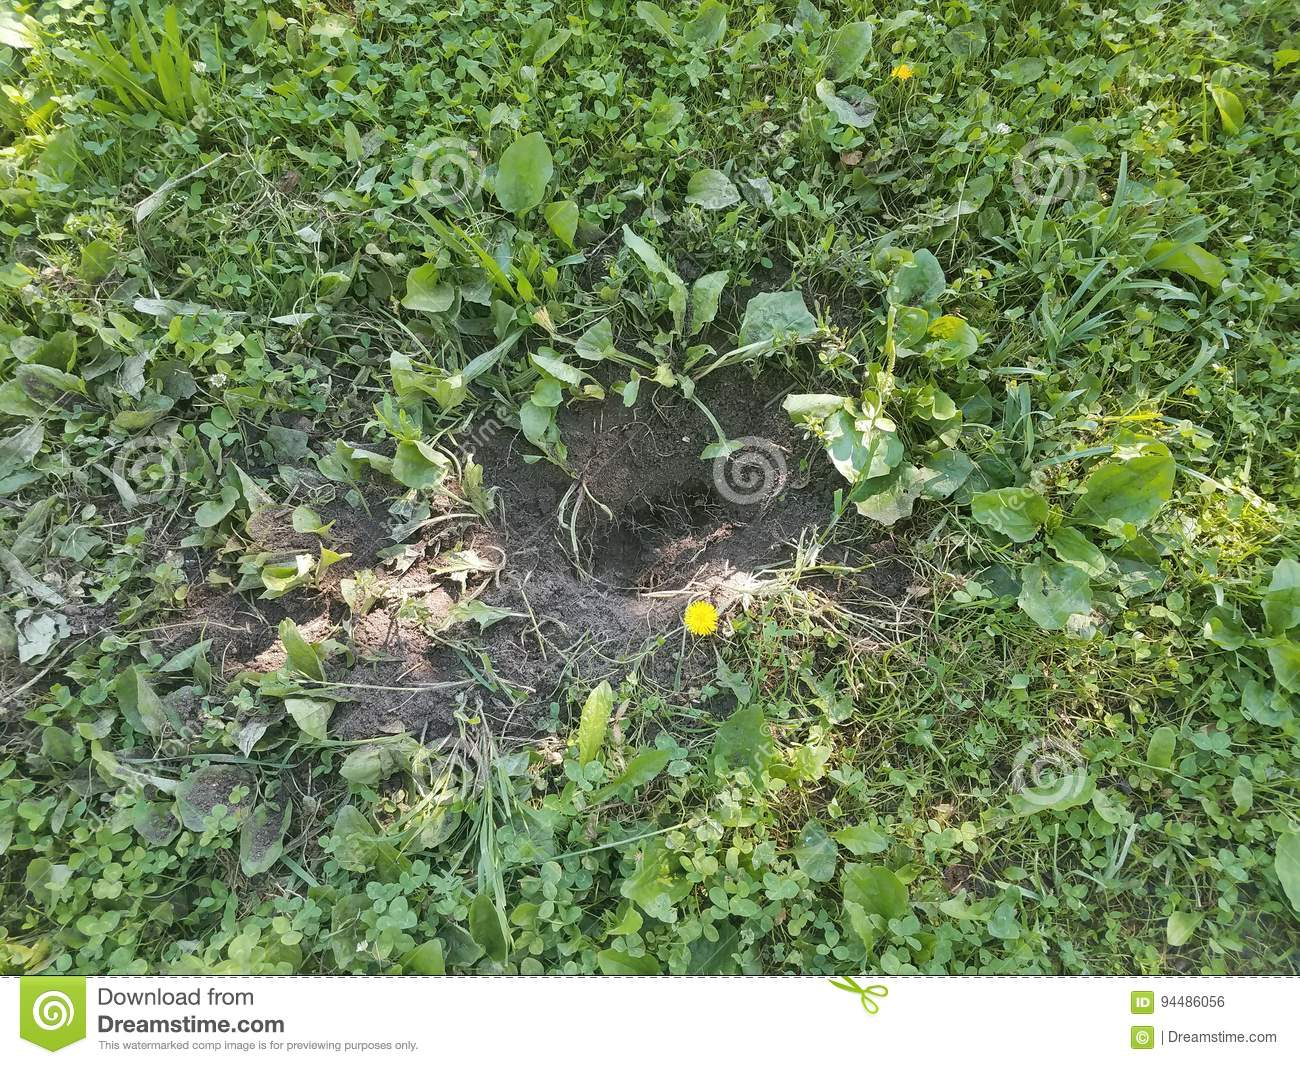 Large hole dug in grass by an animal